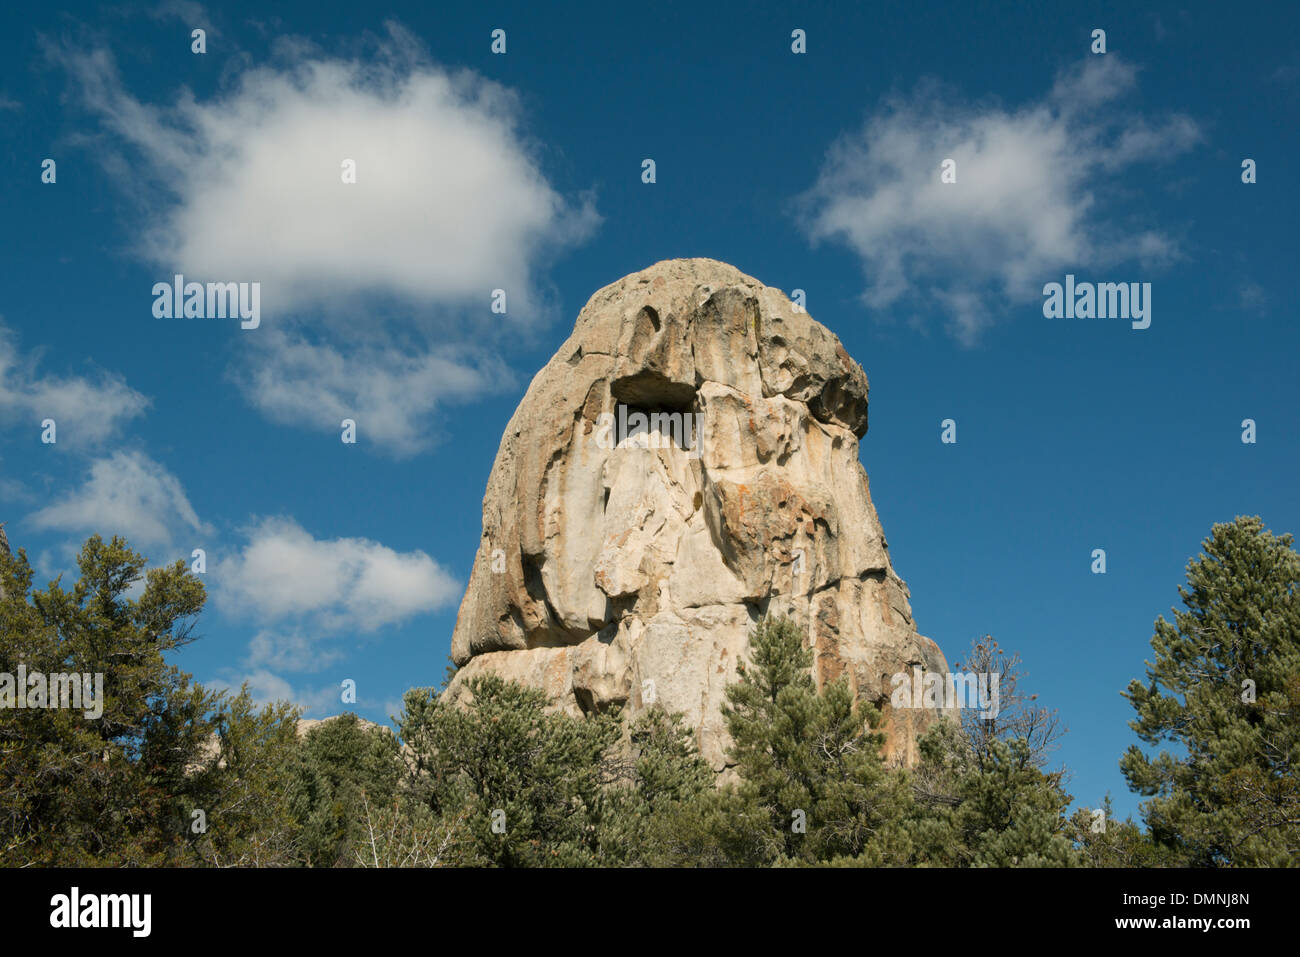 Granite Dome and Clouds, City of Rocks National Reserve, Southern Idaho - Stock Image